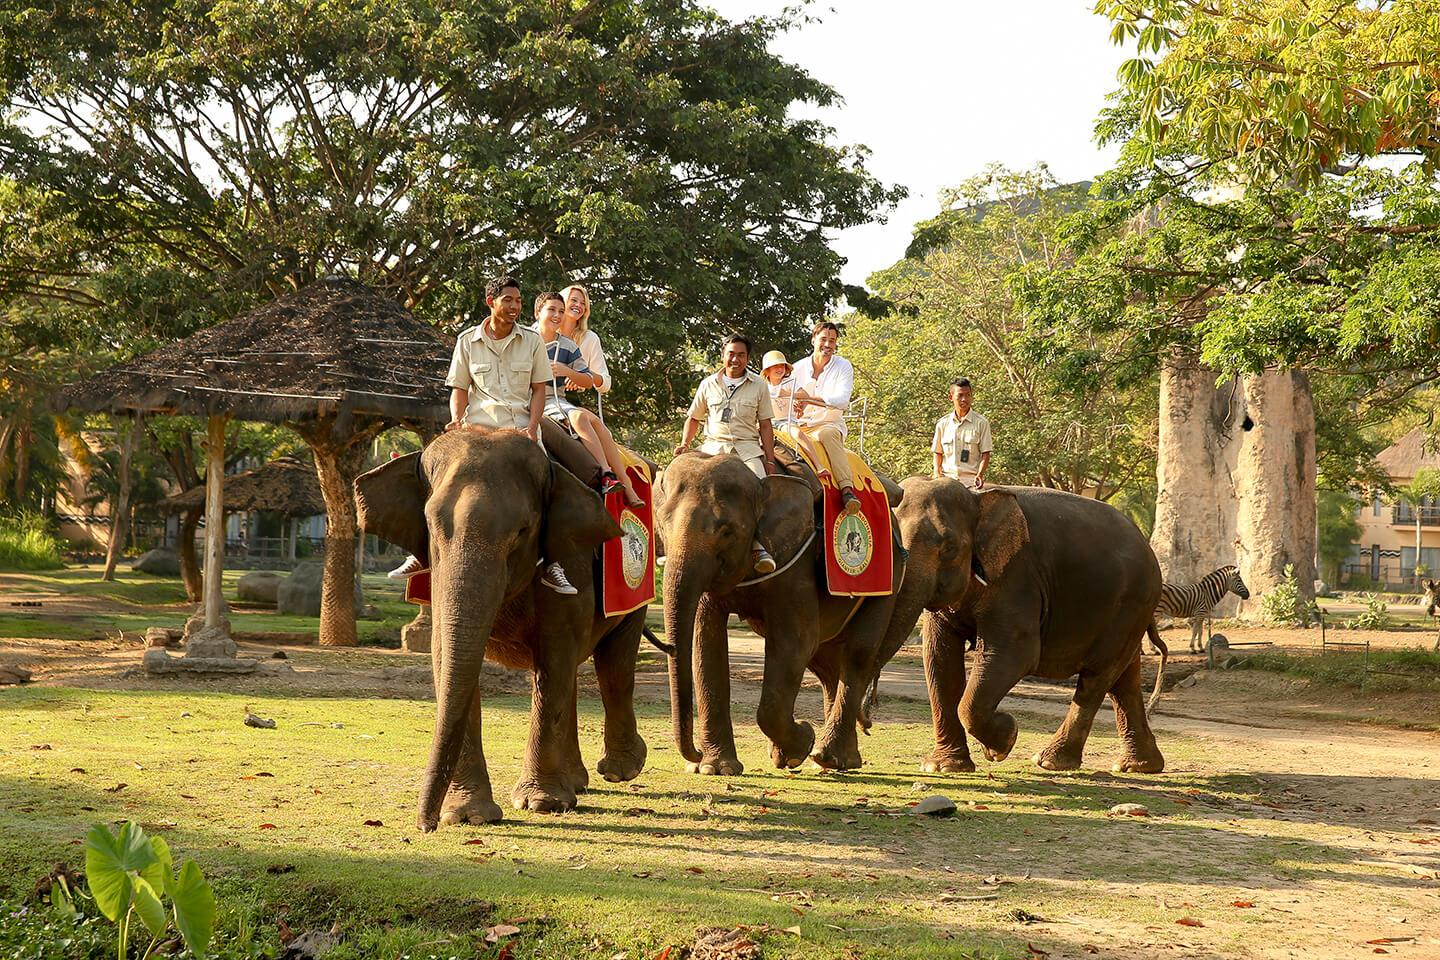 Mara River Safari lodge Elephant Back Safari at Bali Safari